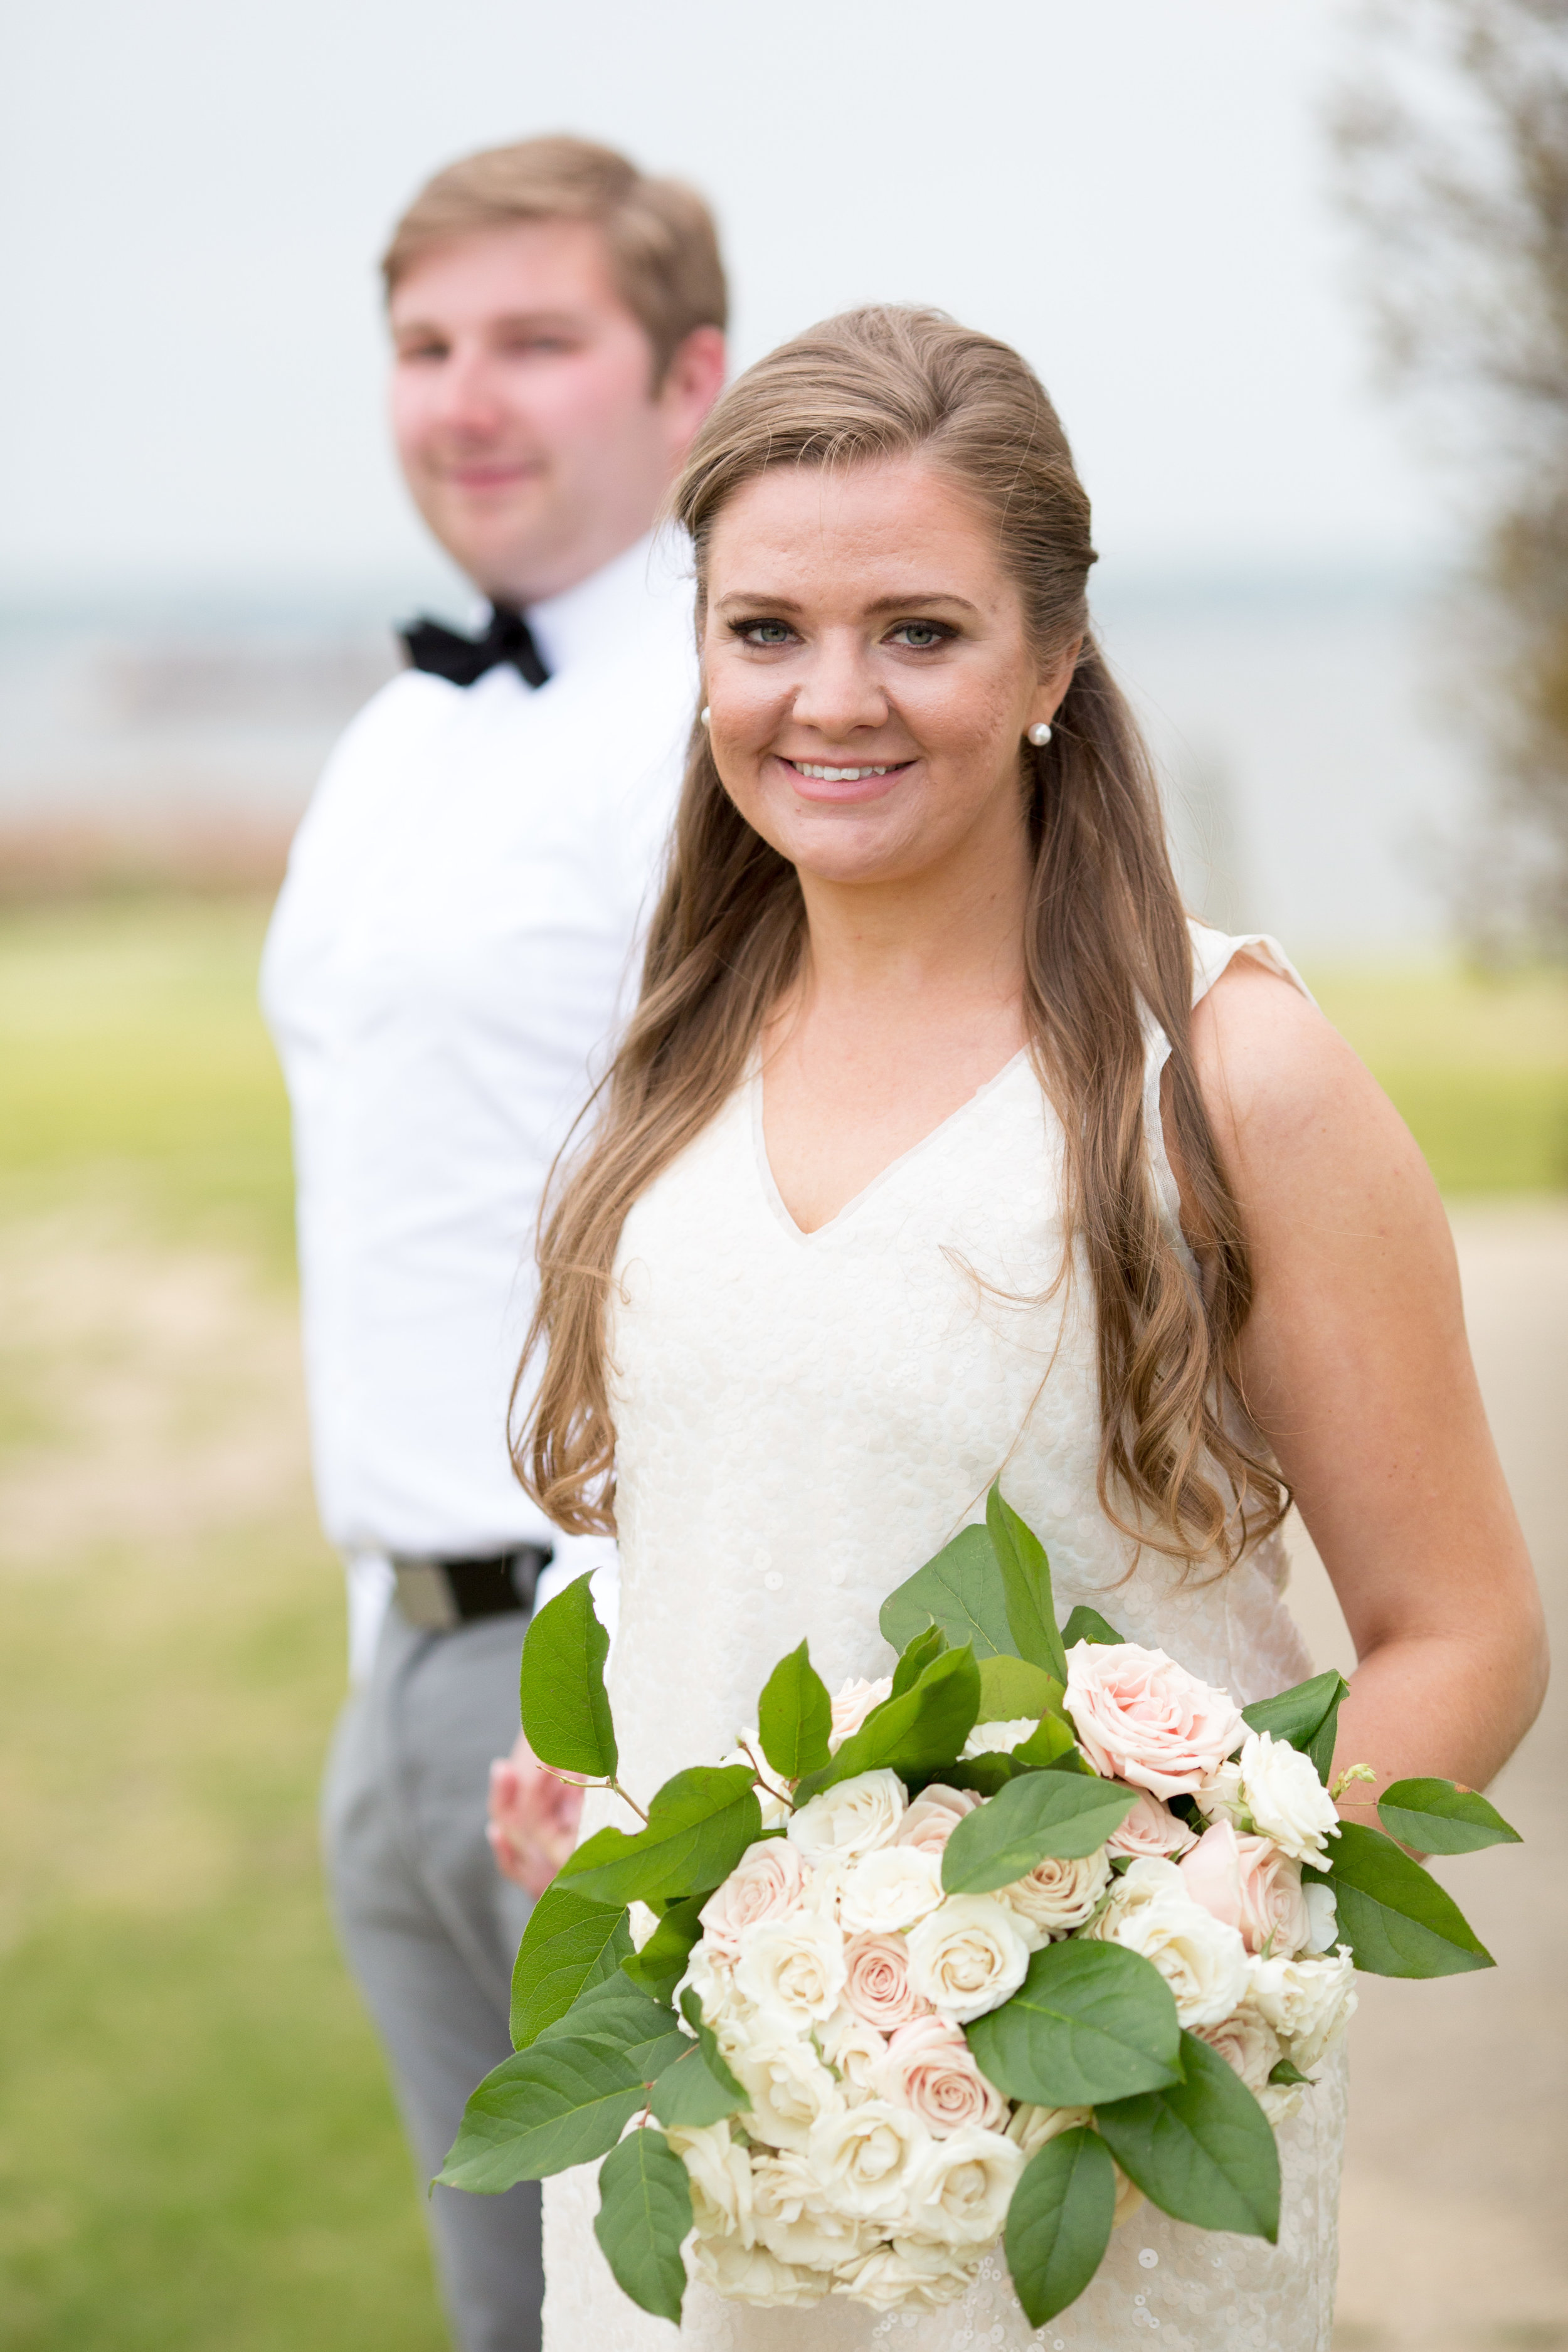 Blush and ivory rose bouquet with greens for beach engagement or beach wedding at sandy hook beach engagement shoot